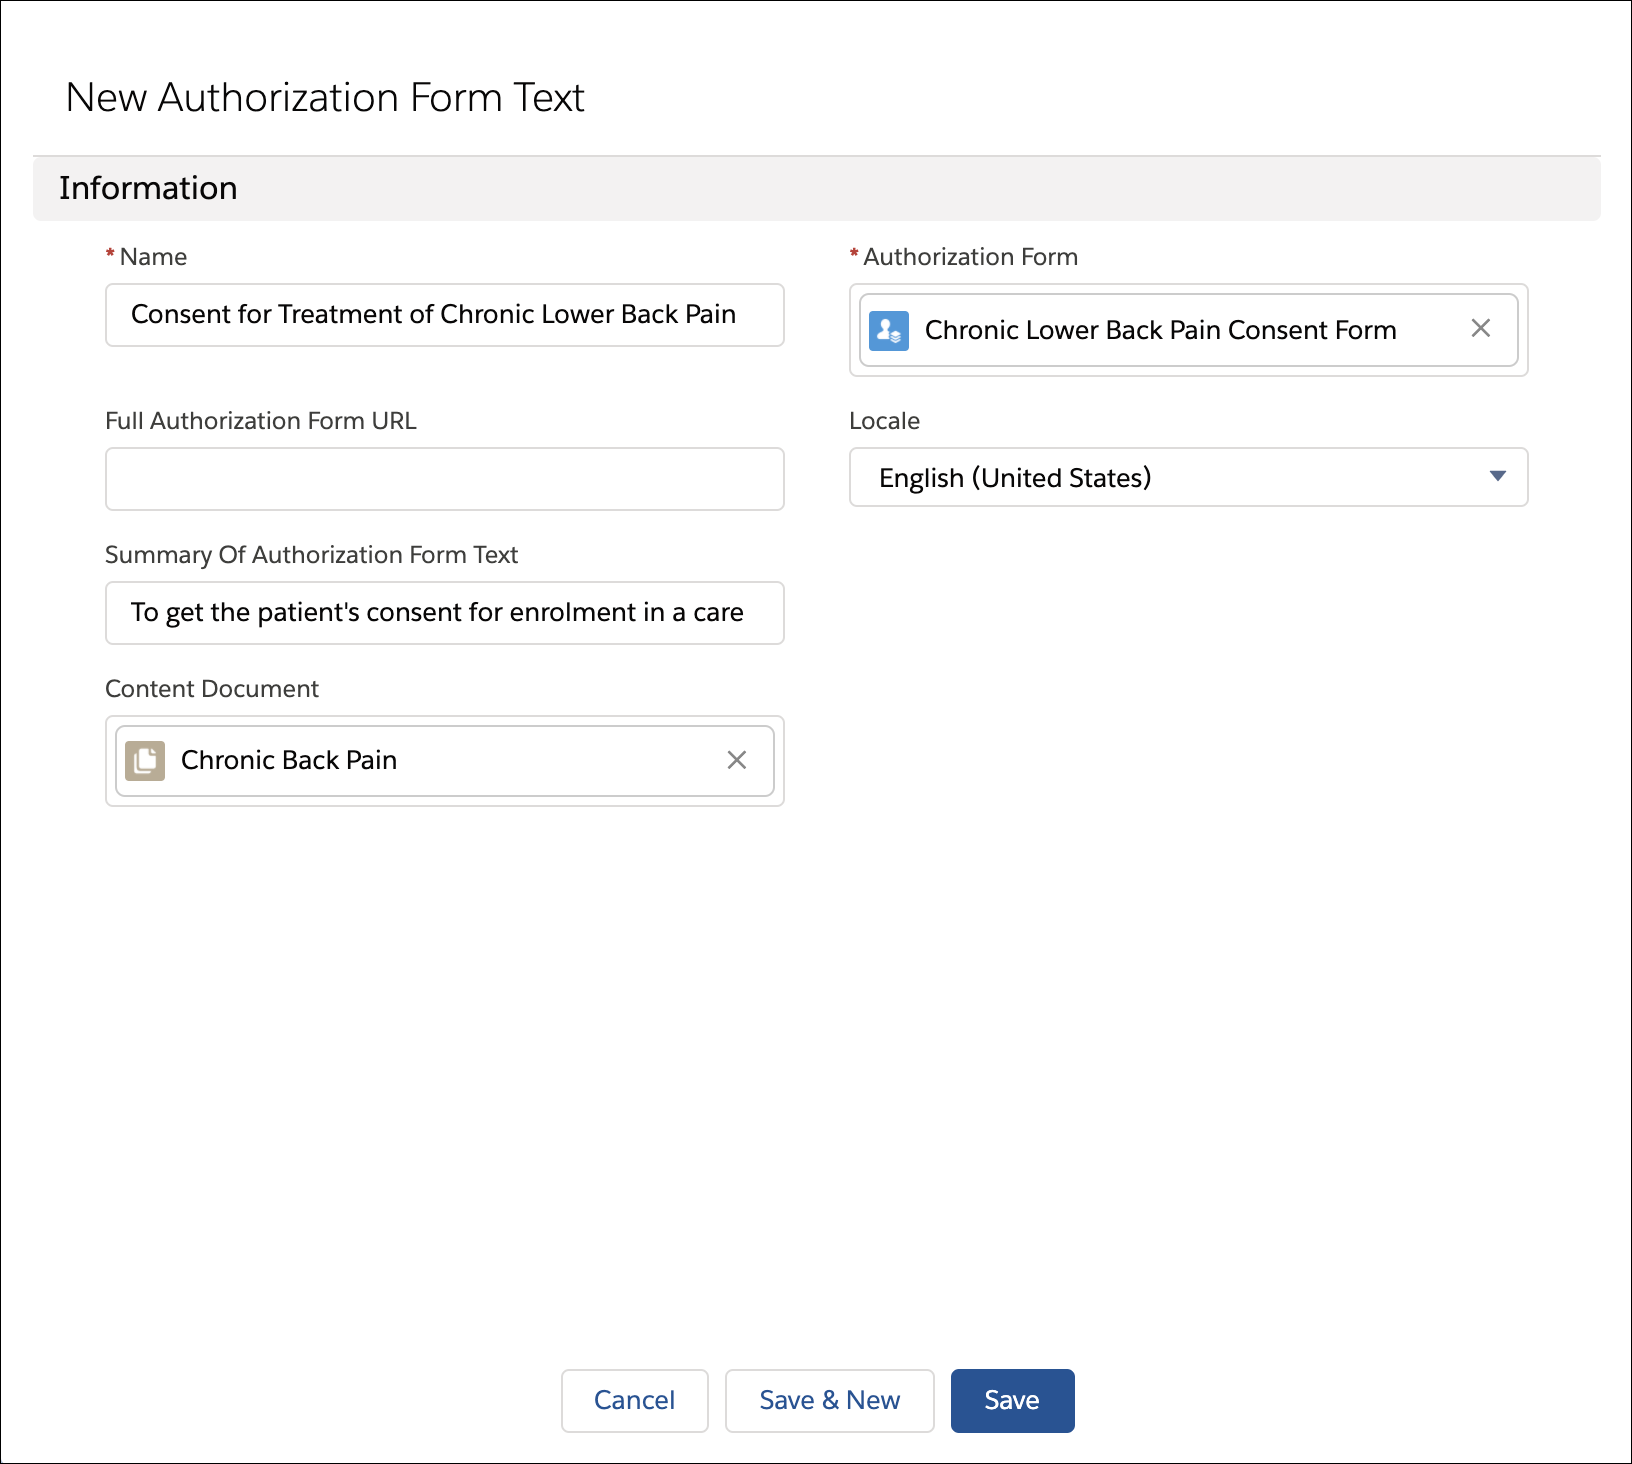 Through the associated authorization forms select the uploaded consent form in the Content Document field.